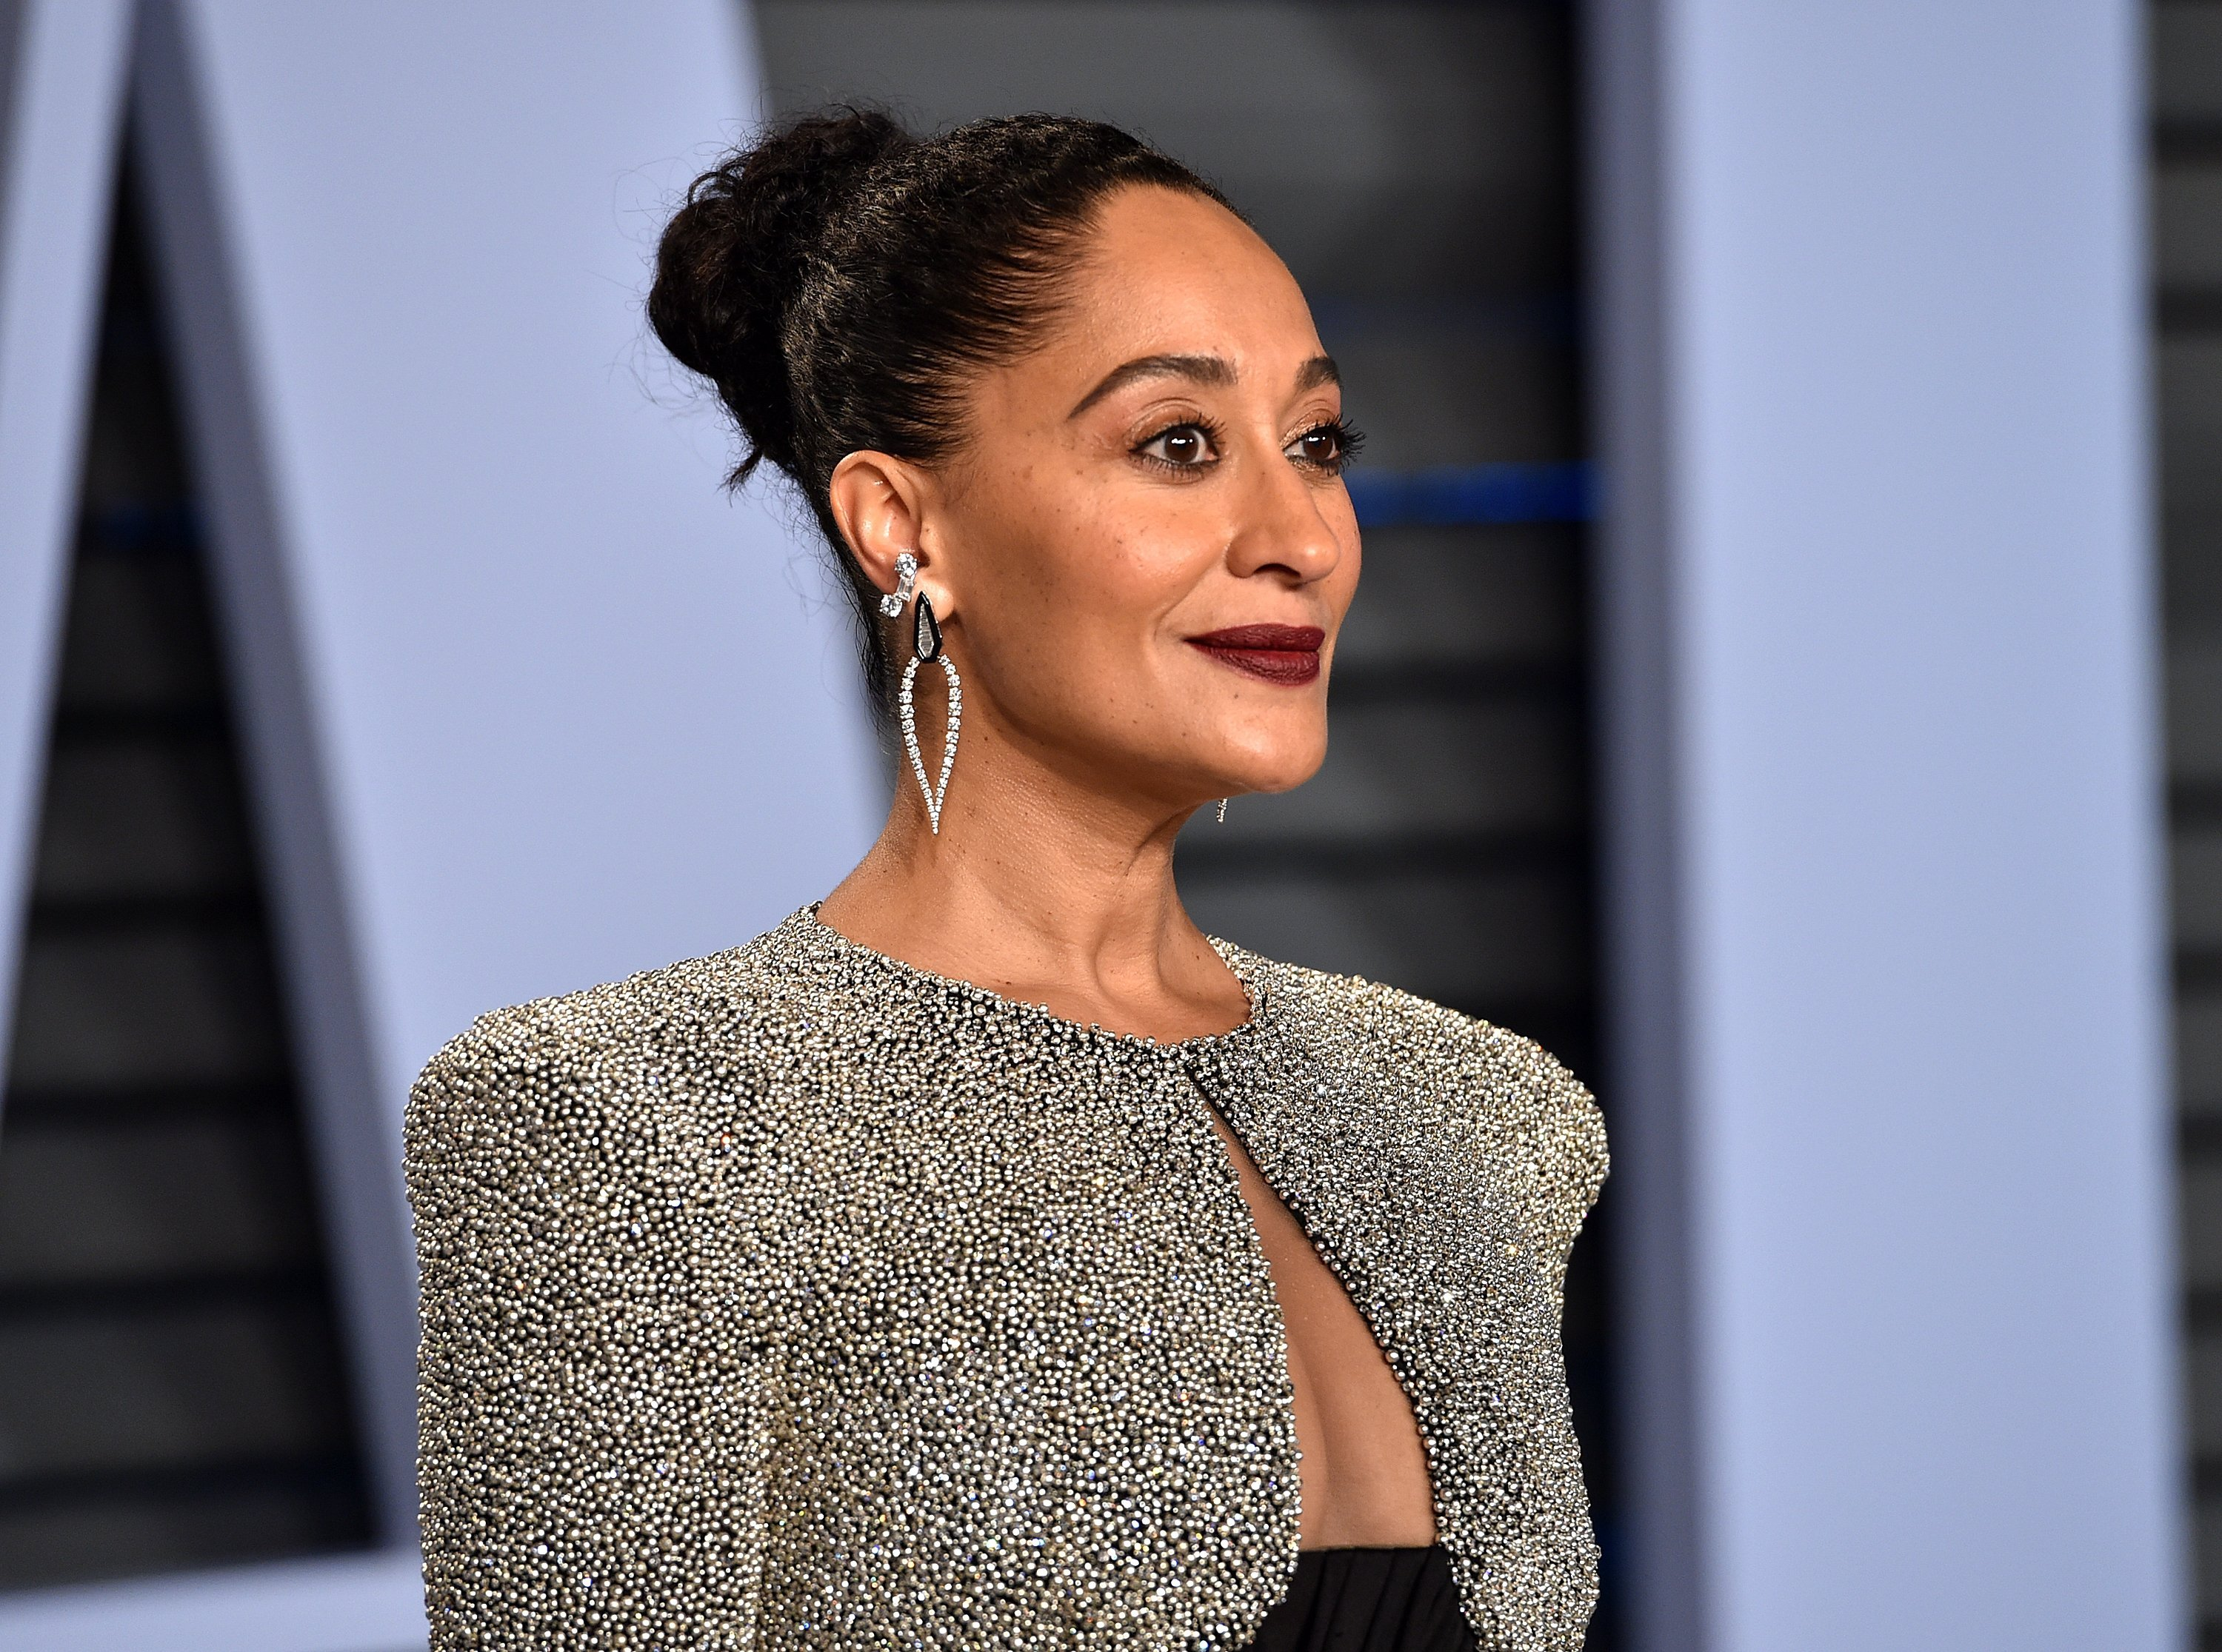 Tracee Ellis Ross attending the 2018 Vanity Fair Oscar Party. | Photo: Getty Images